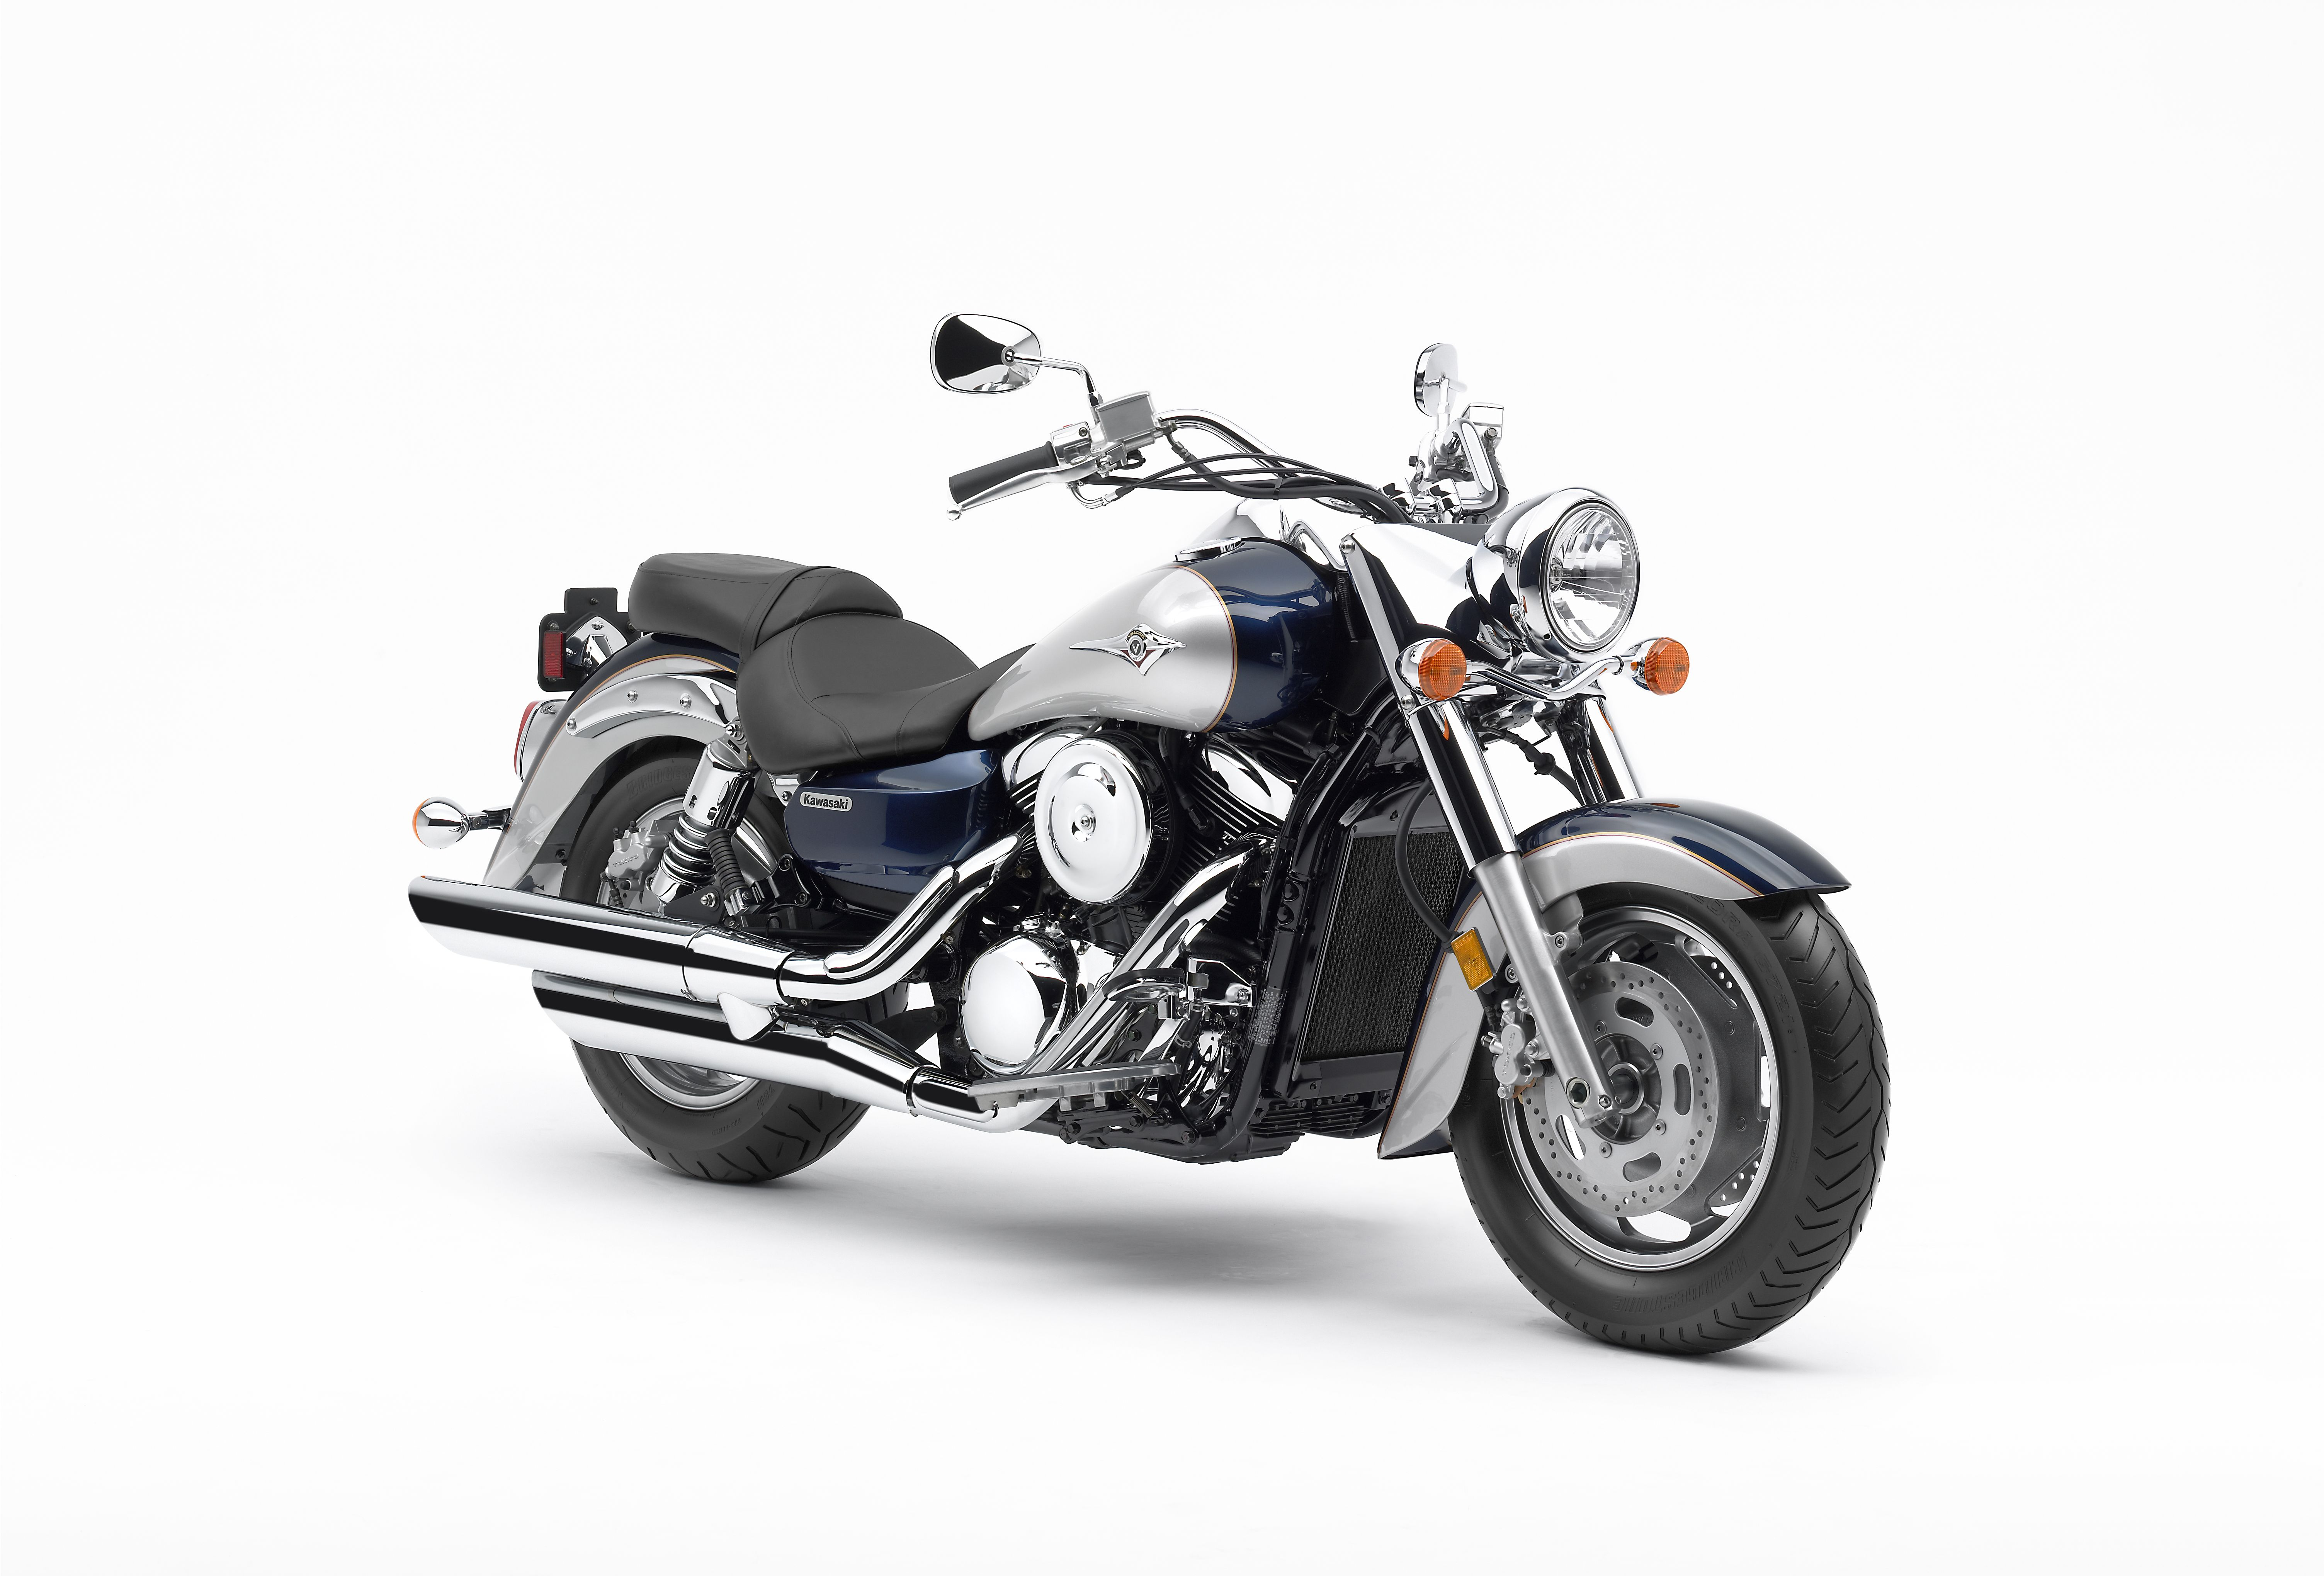 Kawasaki Vulcan 1600 Clic Wiring Diagram - Wiring Diagrams on